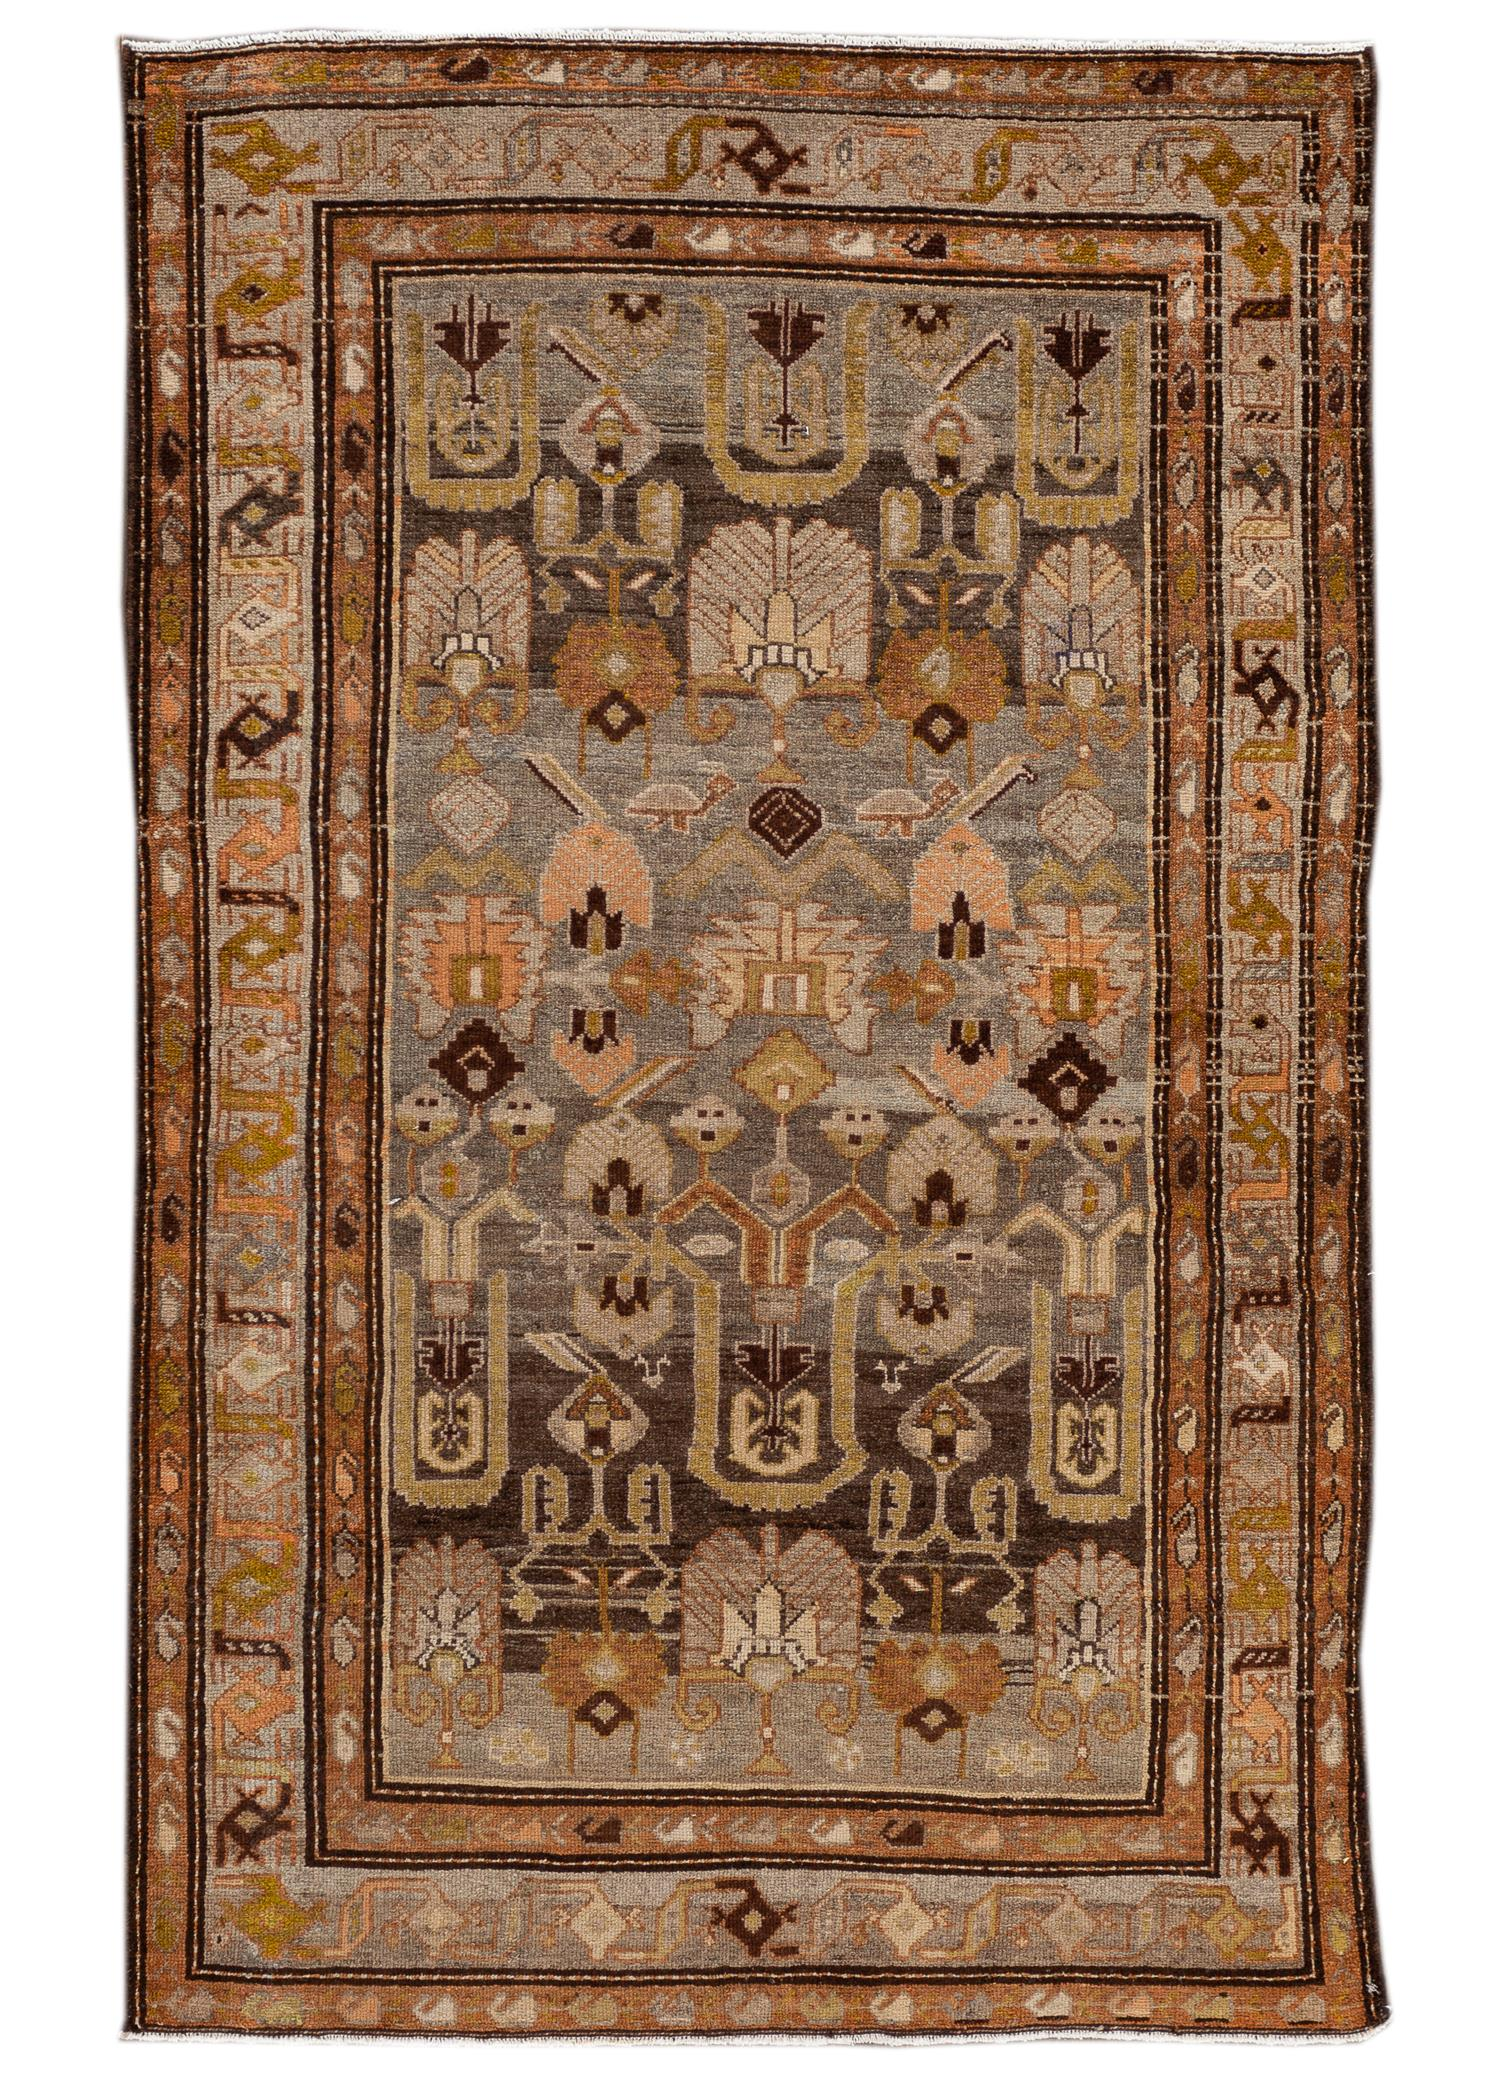 Antique Malayer Rug, #10235259, 4' x 7'